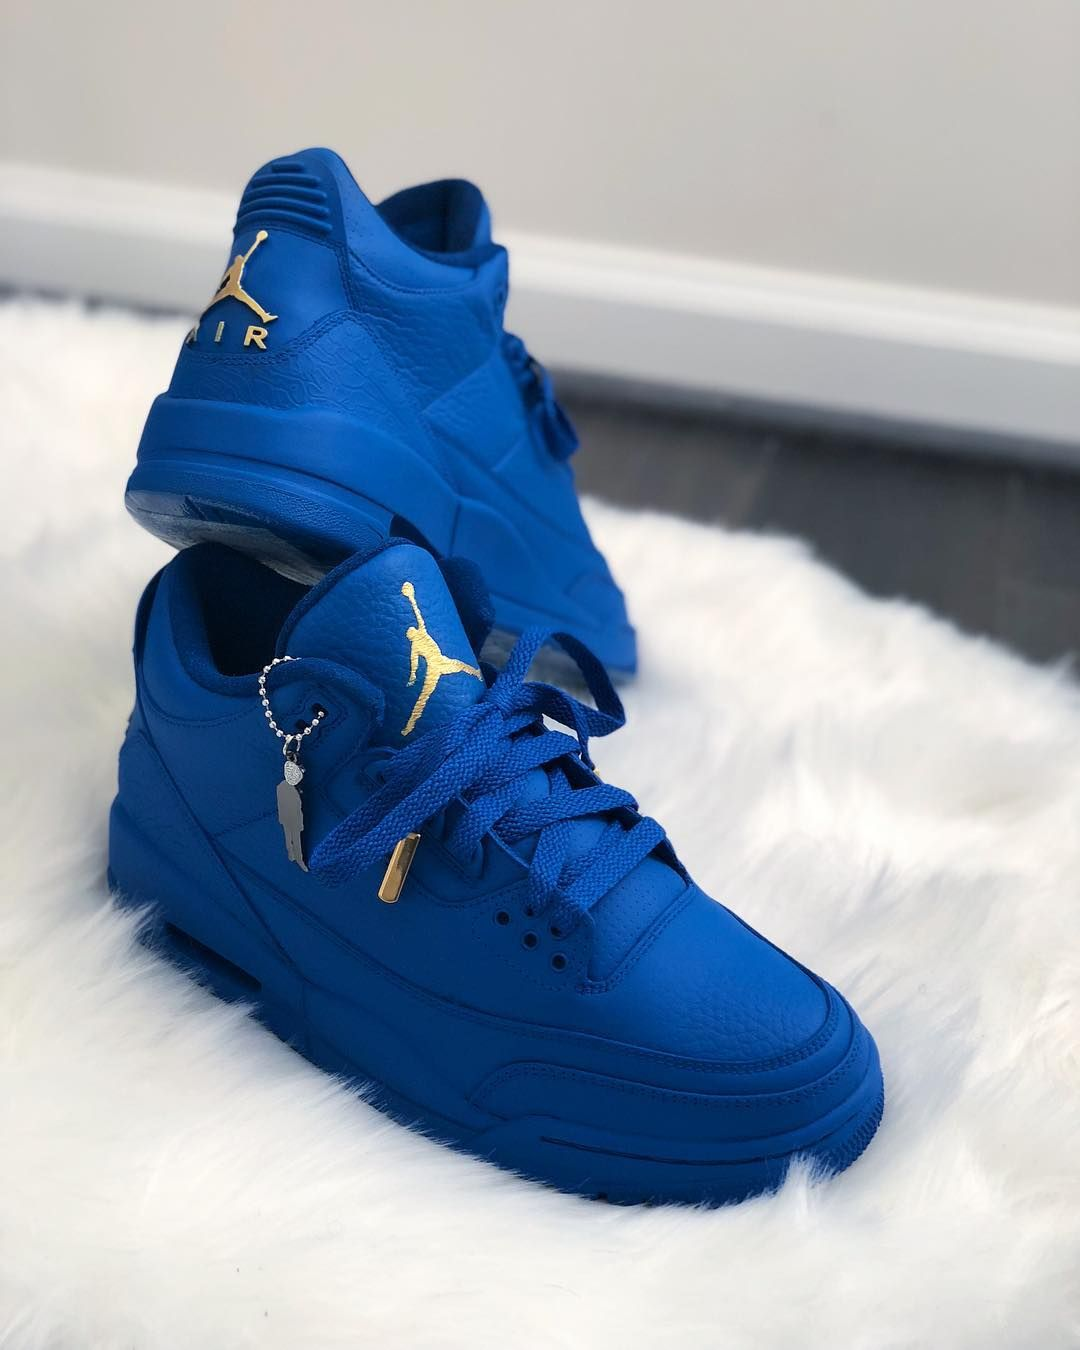 79cb1b24a09 Air Jordan Blue Gold Custom | Jordans in 2019 | Blue jordans, Air ...